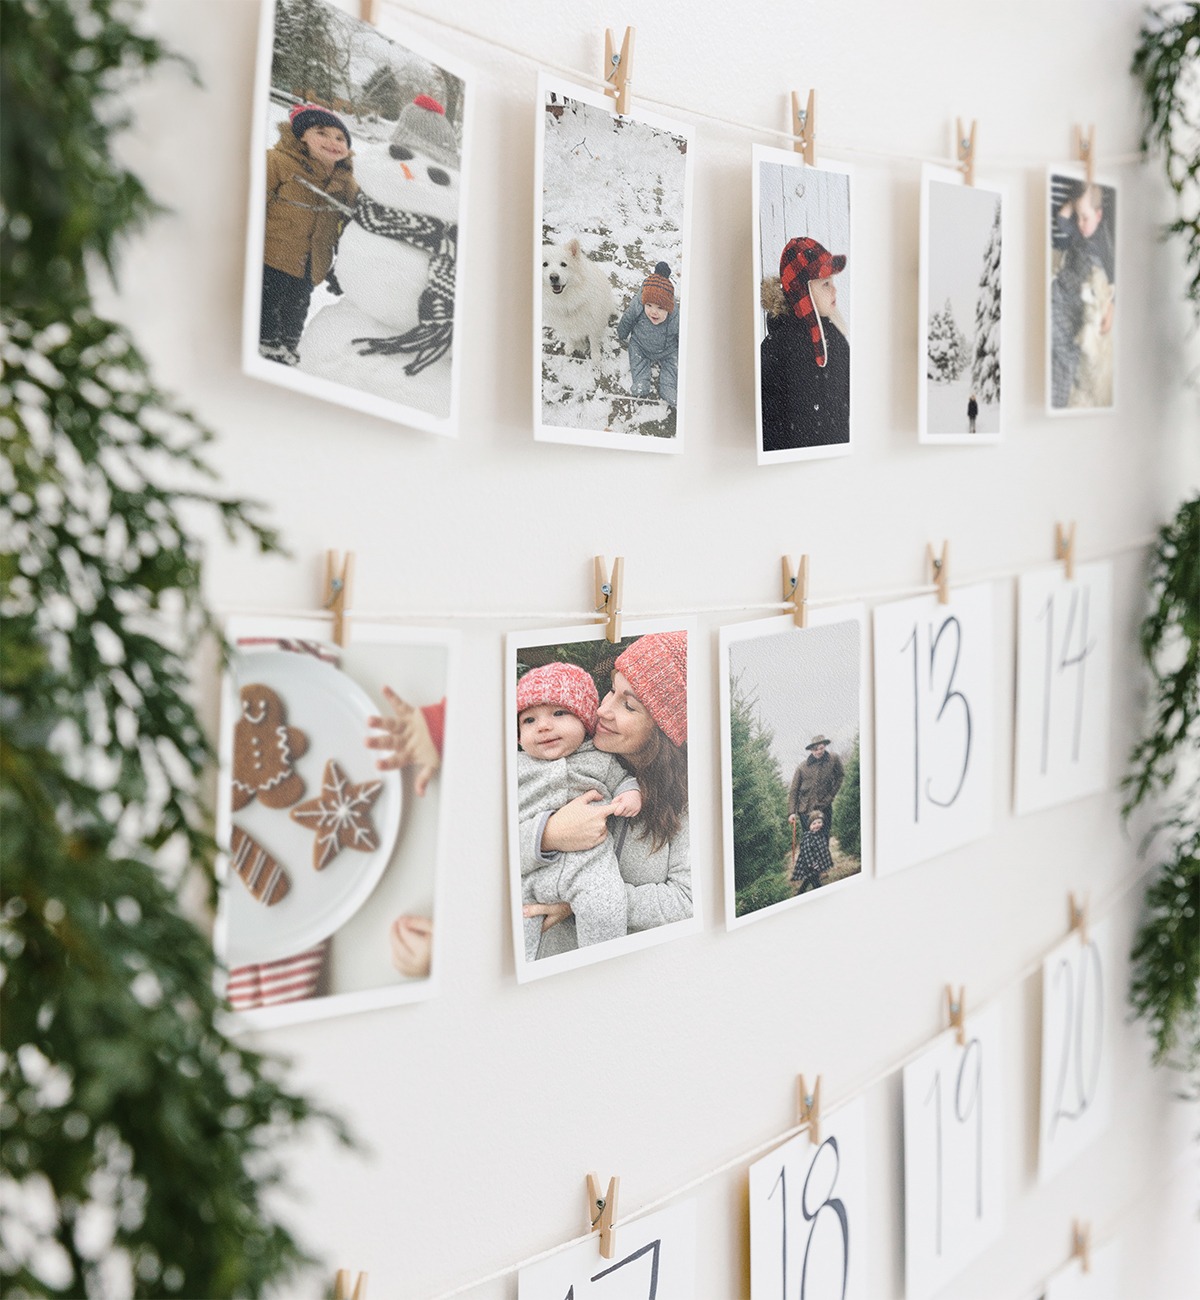 Advent calendar created using photo prints